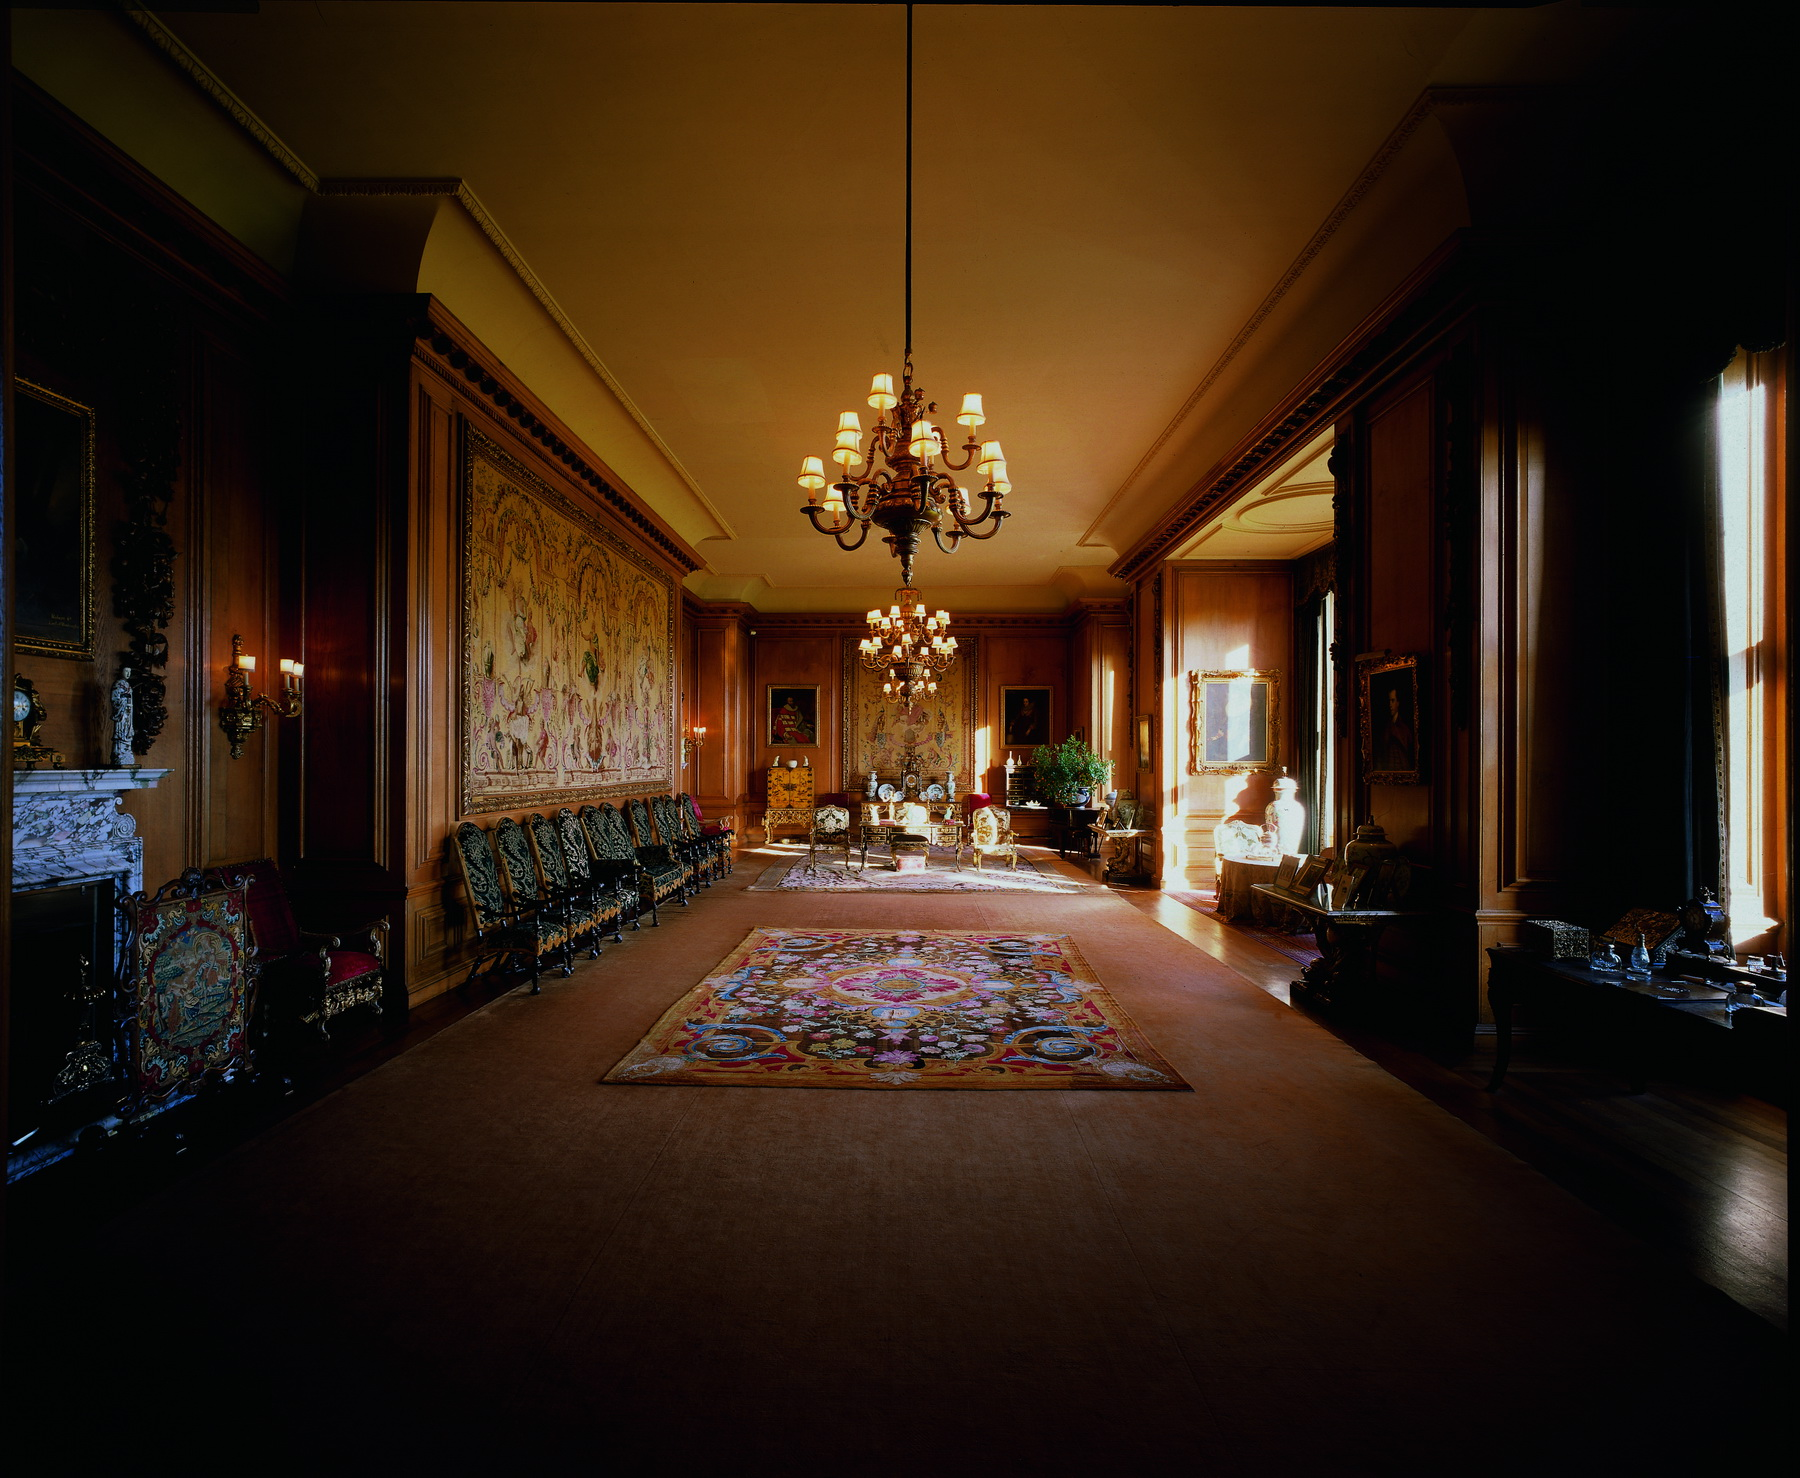 Roxburghe floors castle interior - Interior images ...